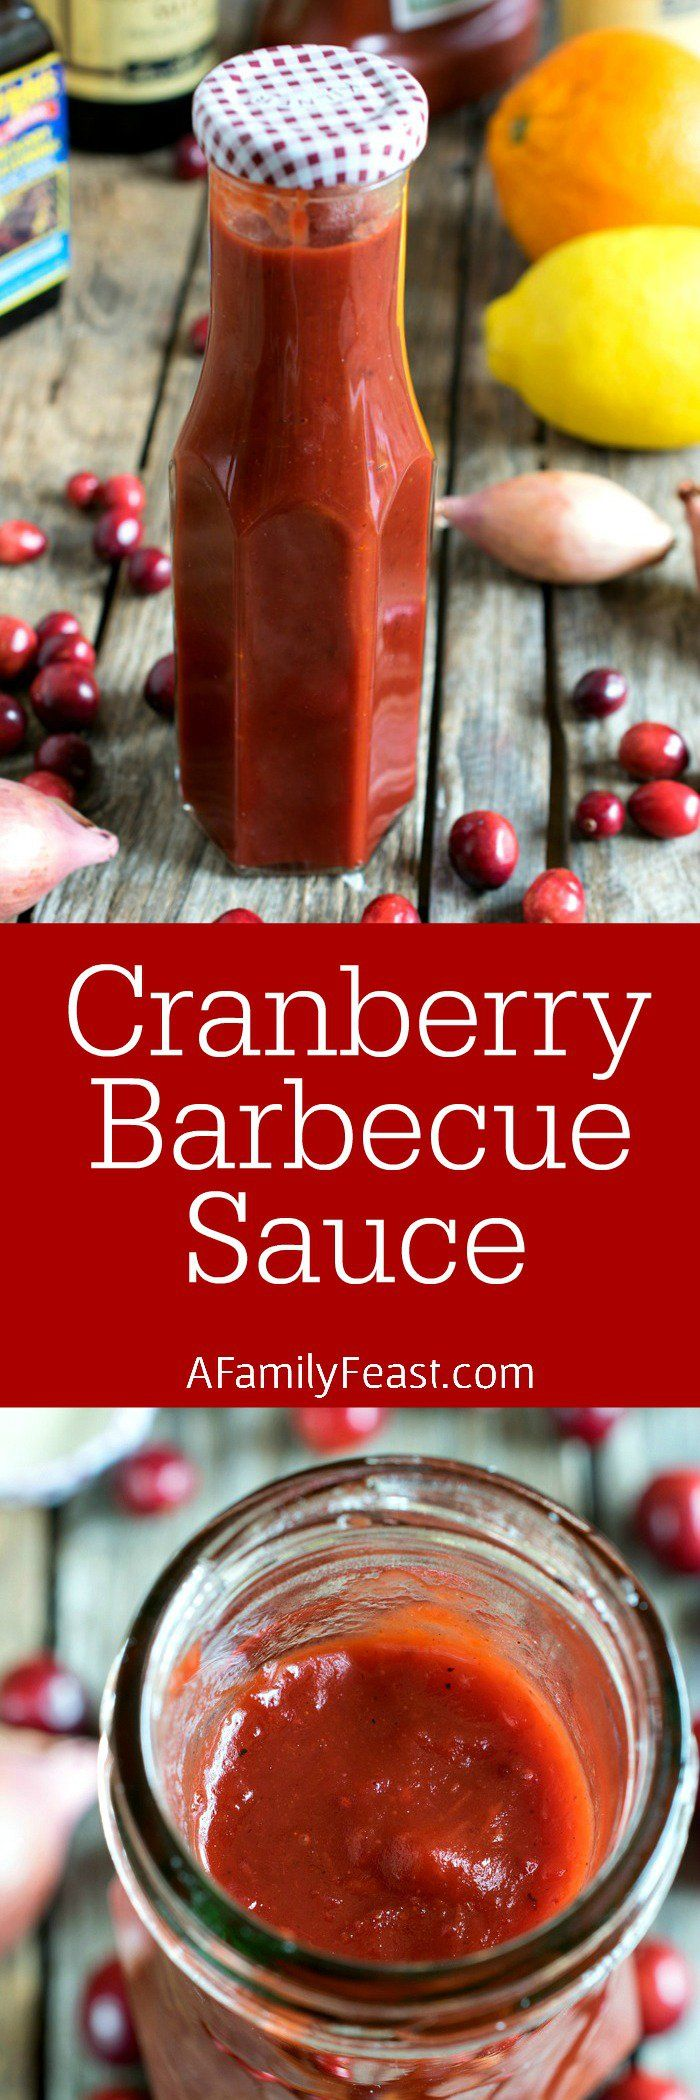 Cranberry Barbecue Sauce - This smoky, tart and sweet sauce is fantastic on pizza or meats. Made with a fresh or frozen cranberries.